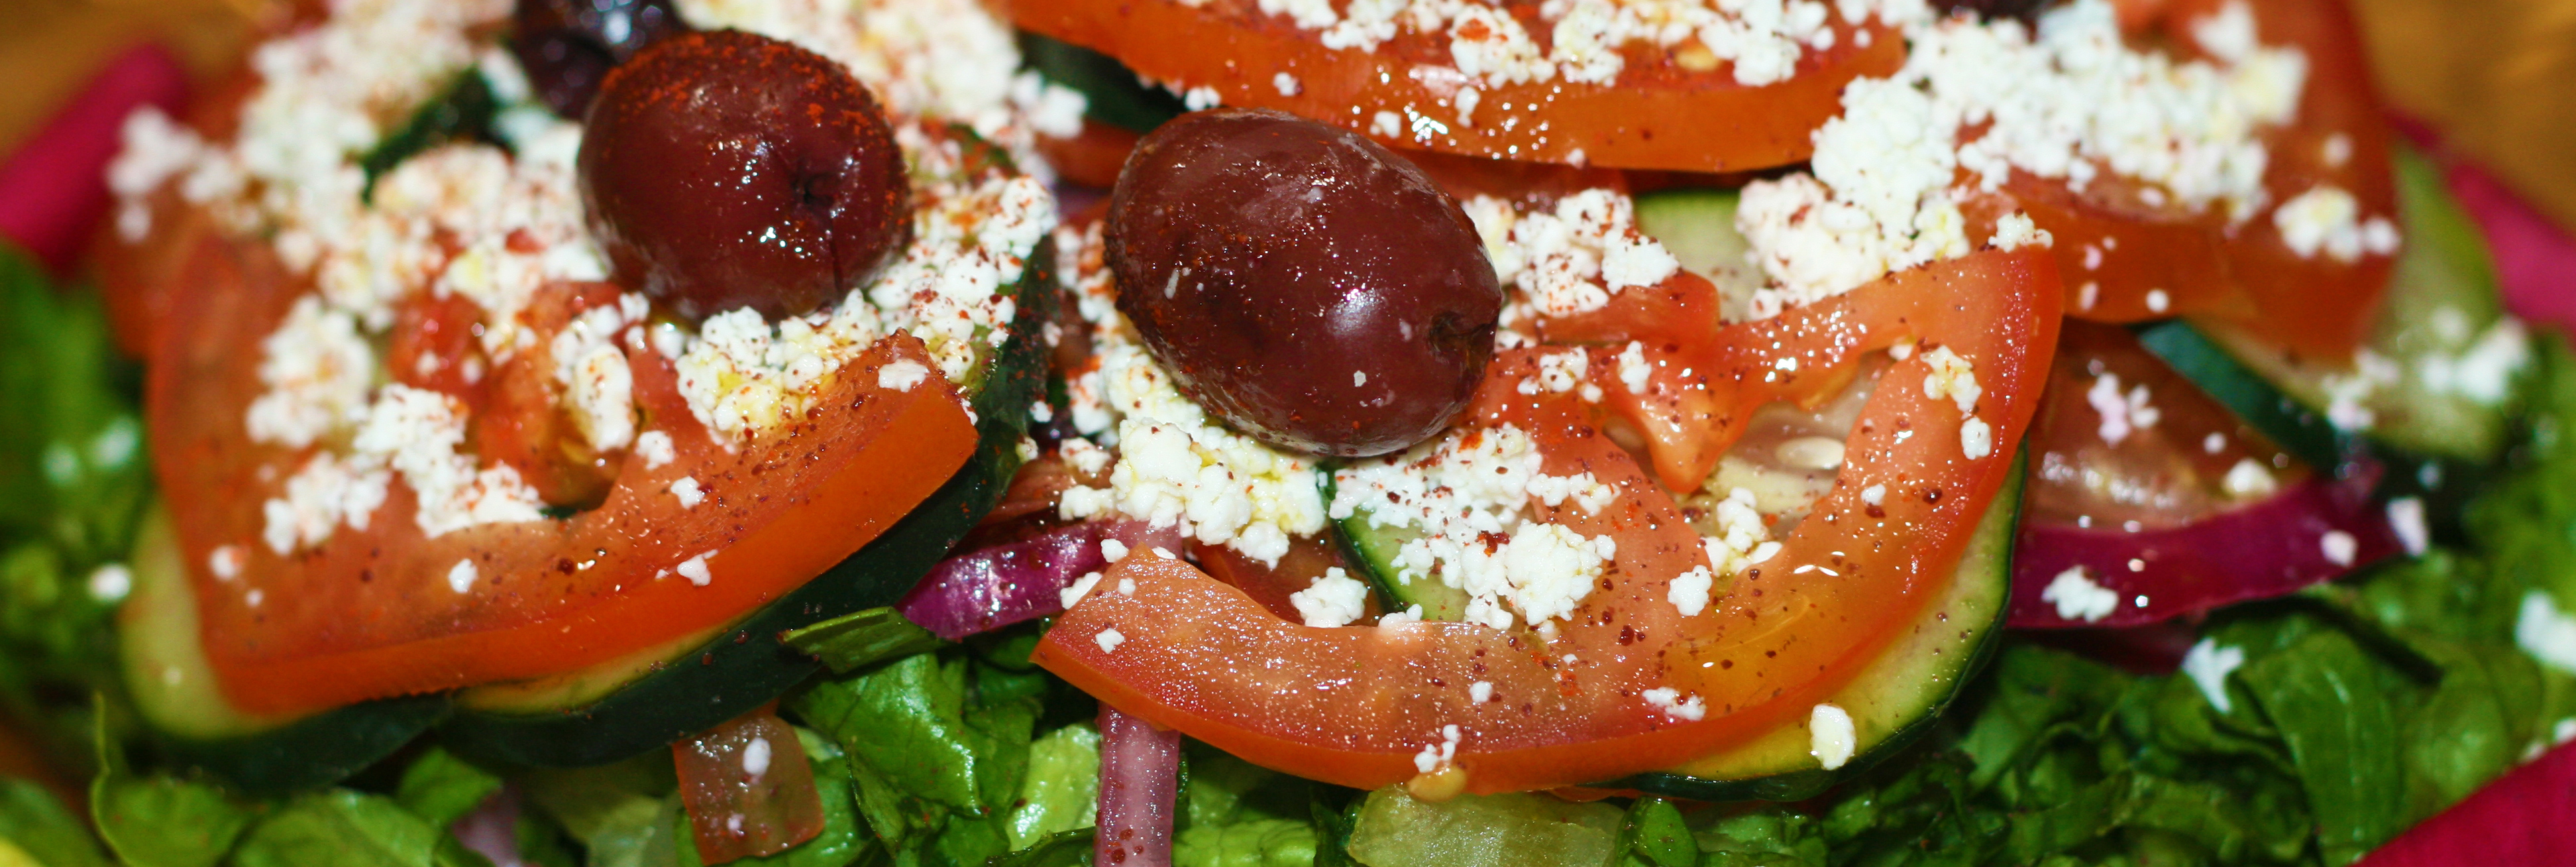 SUPER_closeup_salad